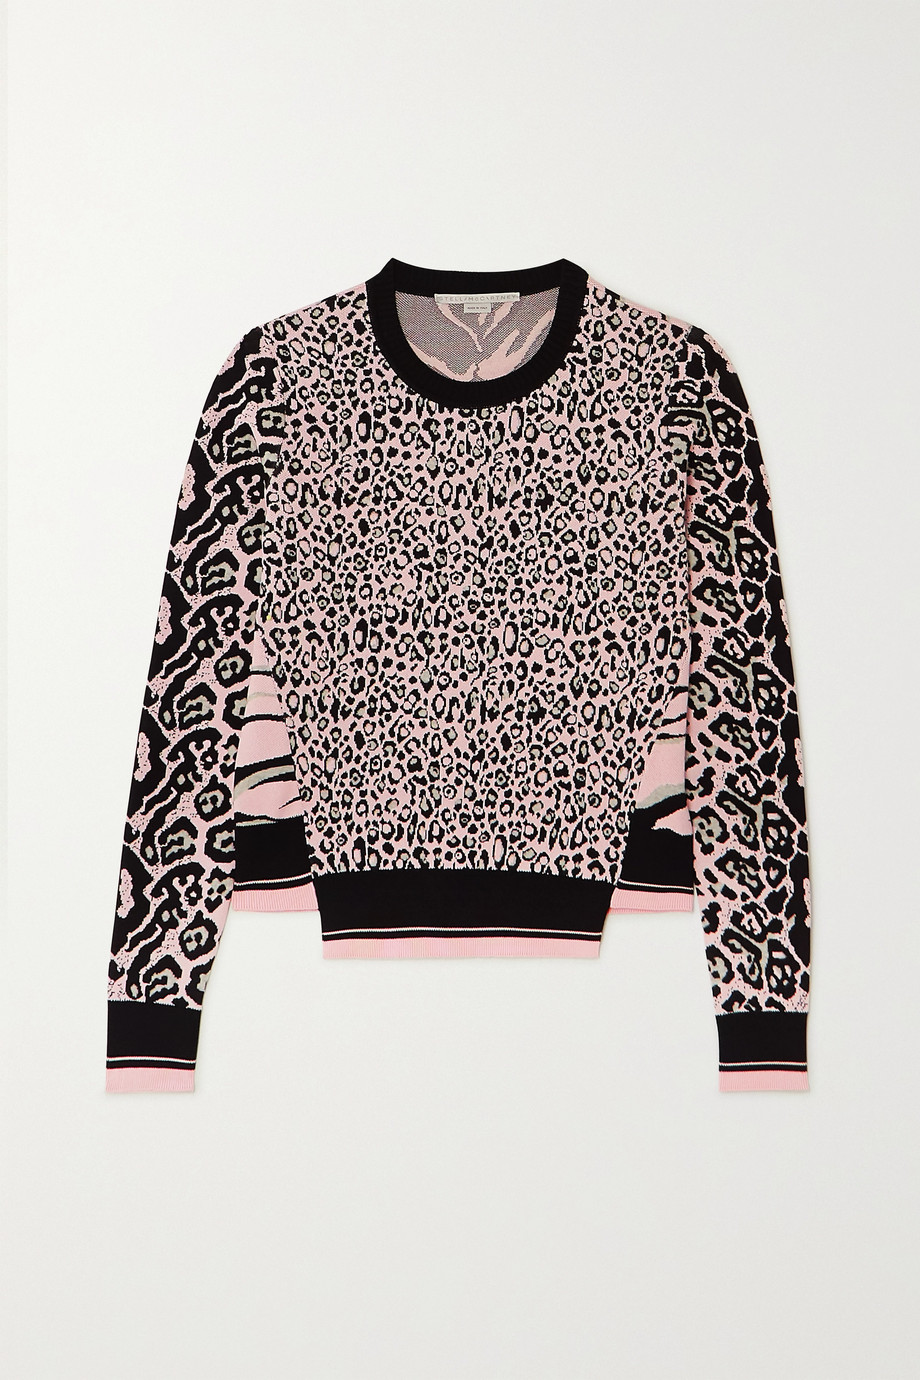 Stella McCartney Jacquard-knit sweater